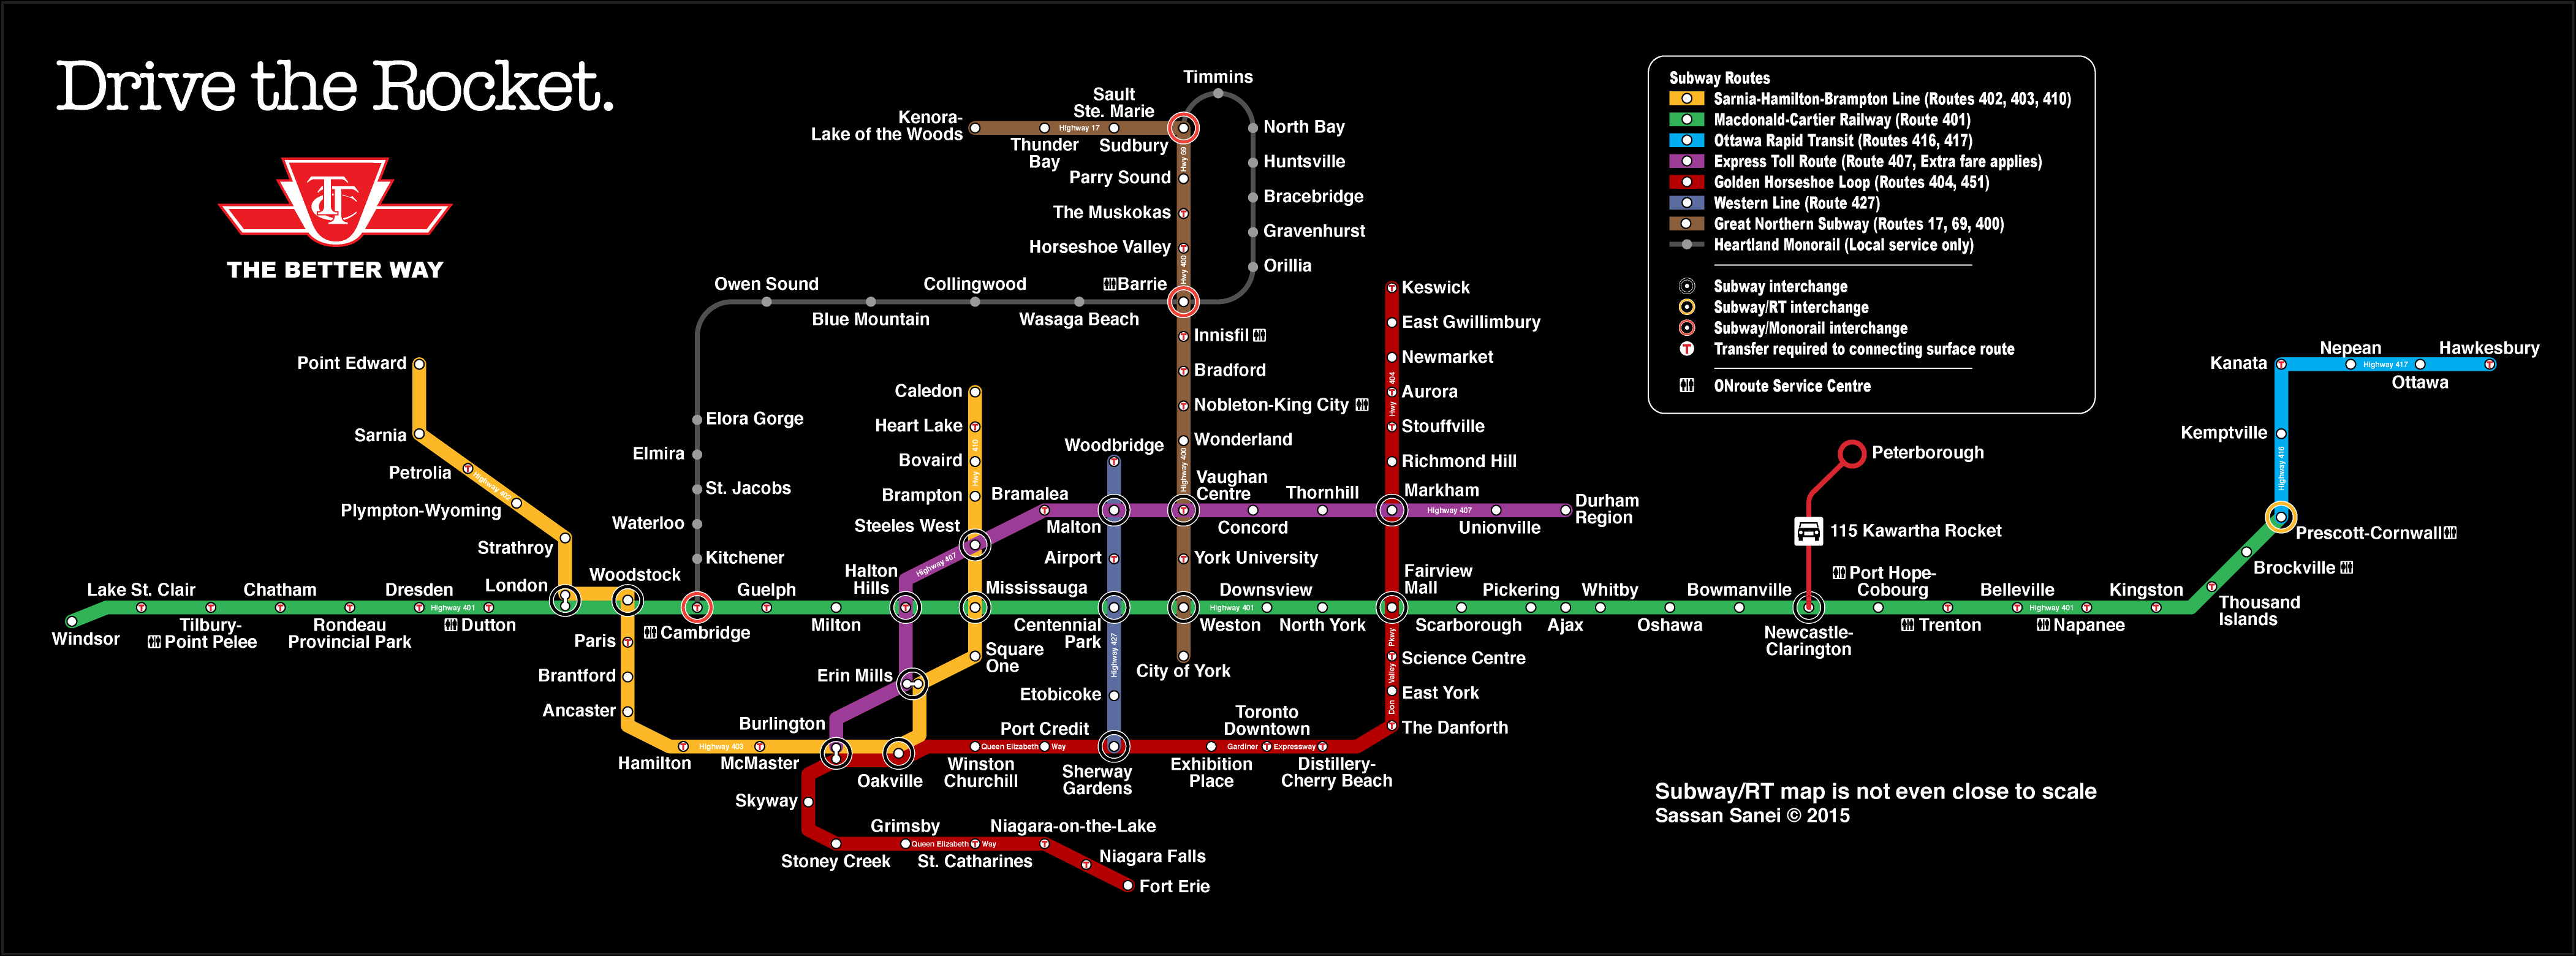 Torontos highways would look like as a TTC map